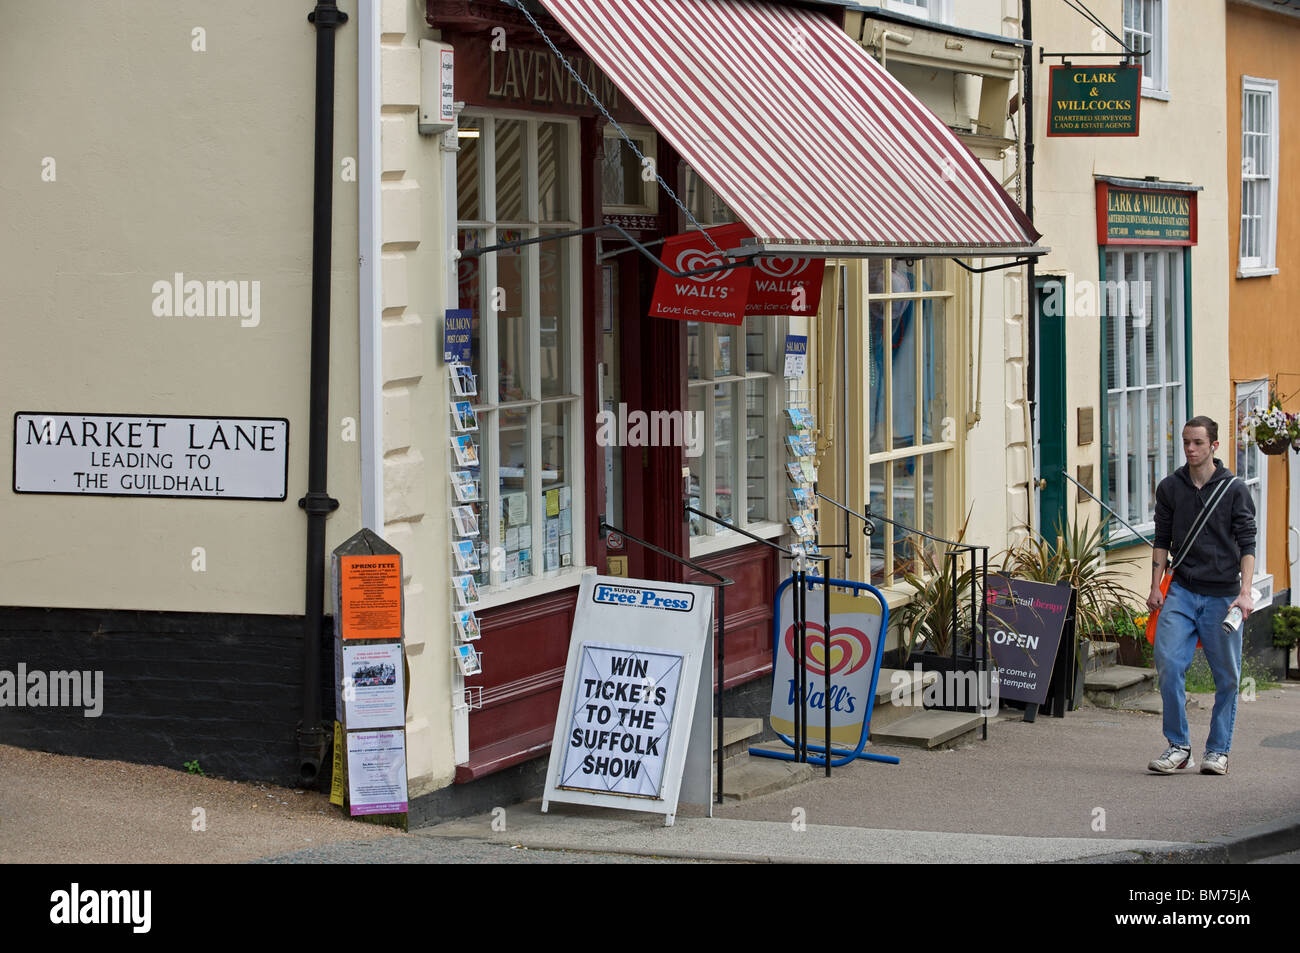 Local village shop, Lavenham, Suffolk, UK. - Stock Image